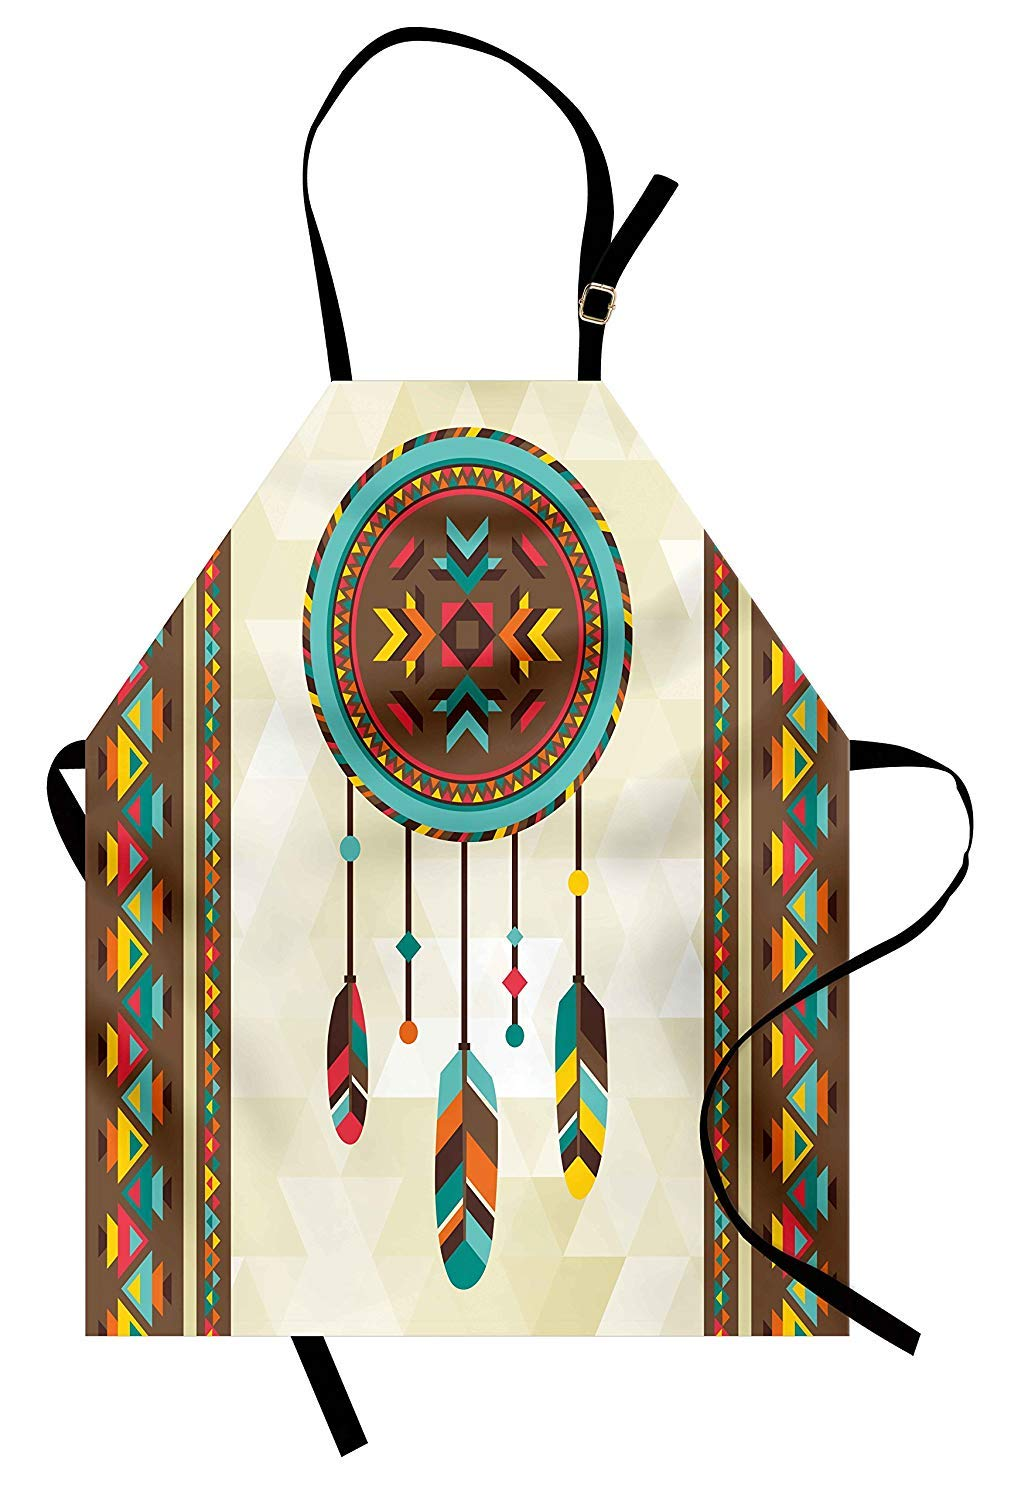 Fantasy Star Waterproof Apron with Adjustable Neck- Dream Catcher Illustration with Tribal Background Quills Native American Traditional Unisex Durable Bib Apron for Grill Cooking Baking by Fantasy Star